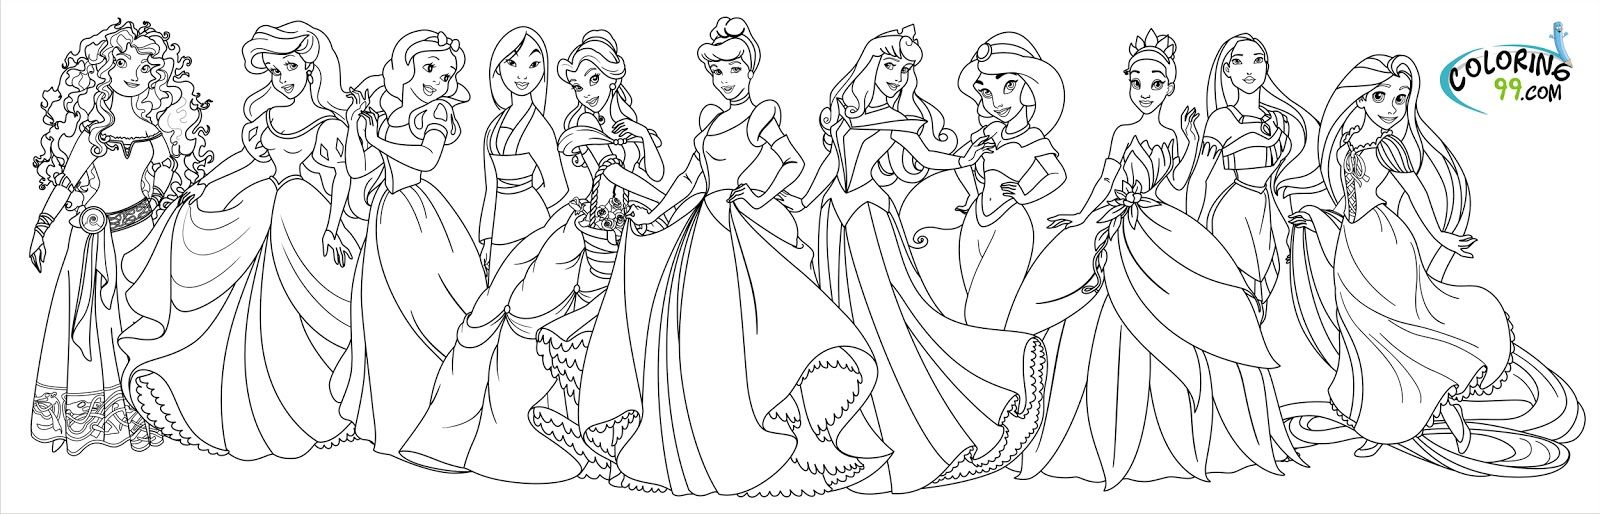 Fans Request Disney Princess With Merida From Brave Coloring Pages Paginas Para Colorear Disney Princesa Para Pintar Paginas Para Colorear